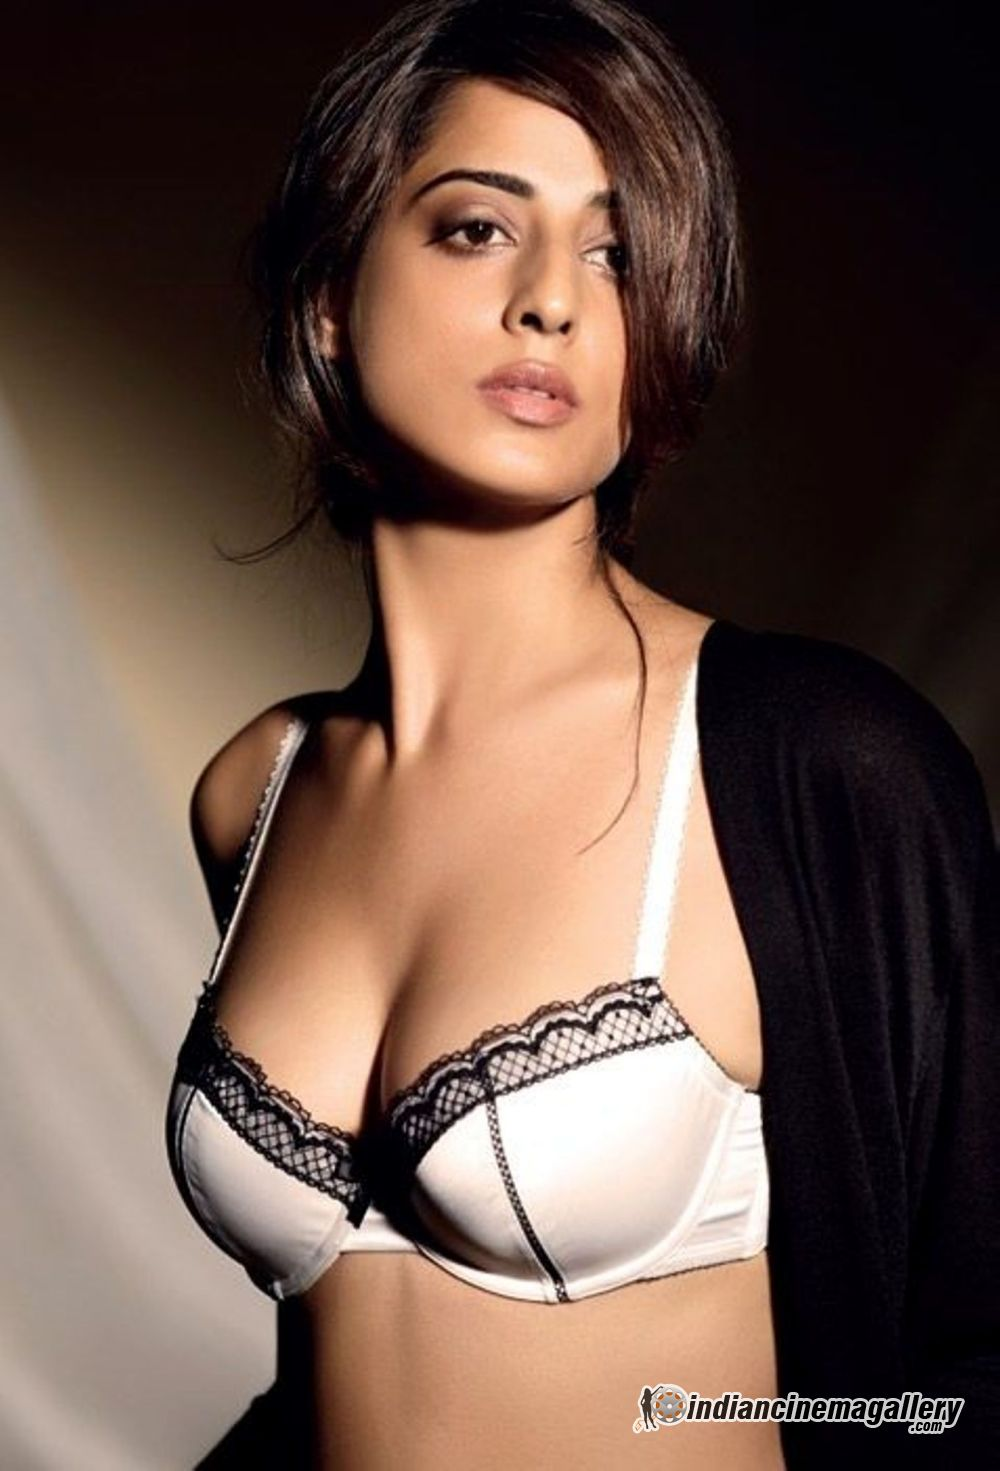 Hottest Avatar of Mahie Gill - VP (8)